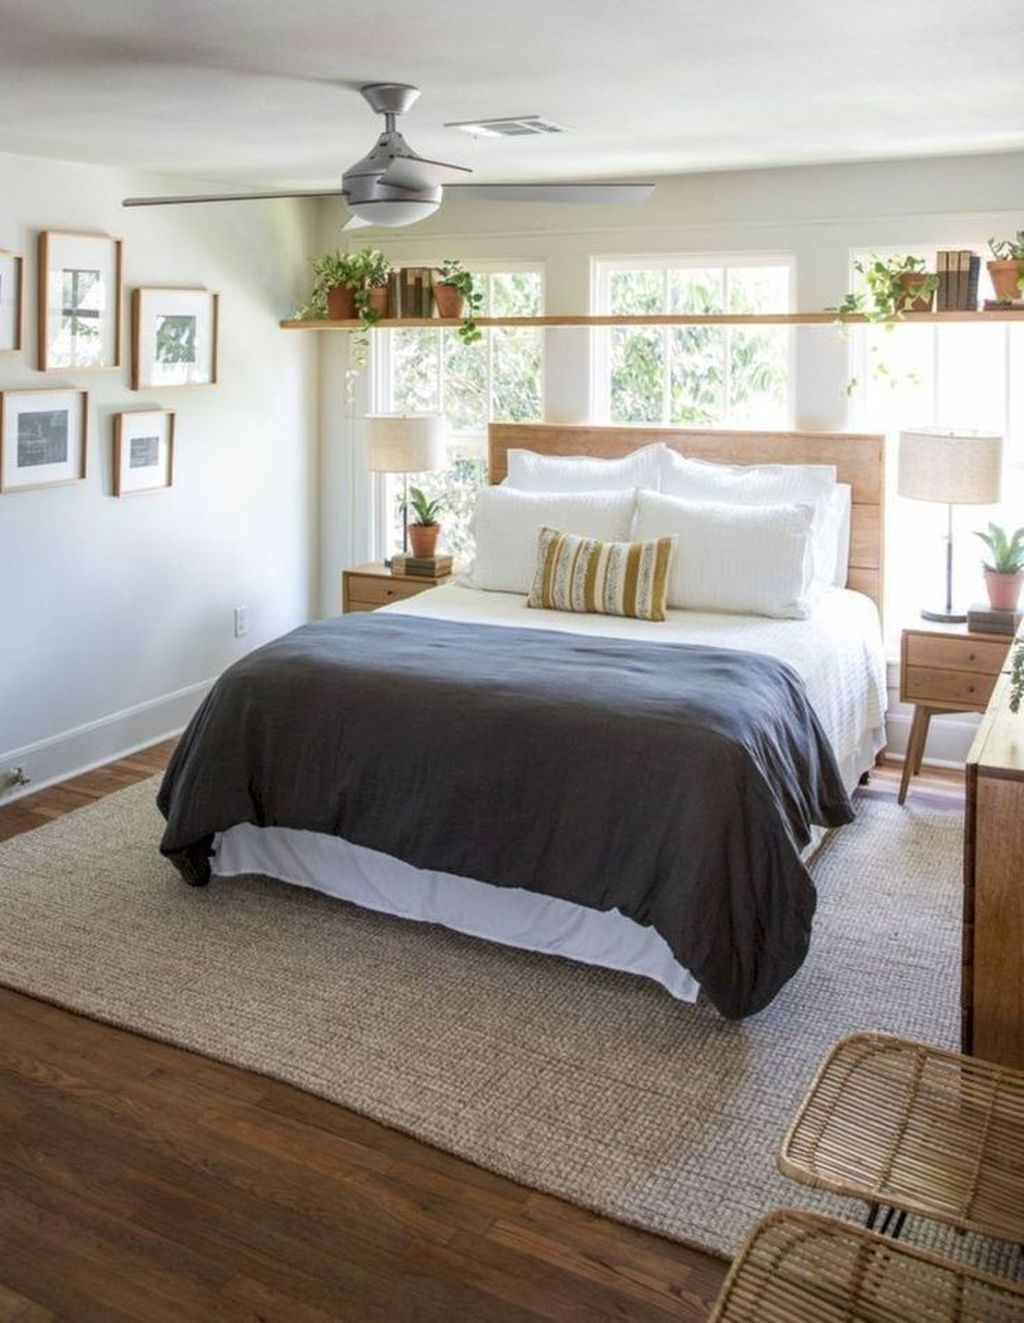 The Best Small Master Bedroom Design Ideas WIth Farmhouse Style 15